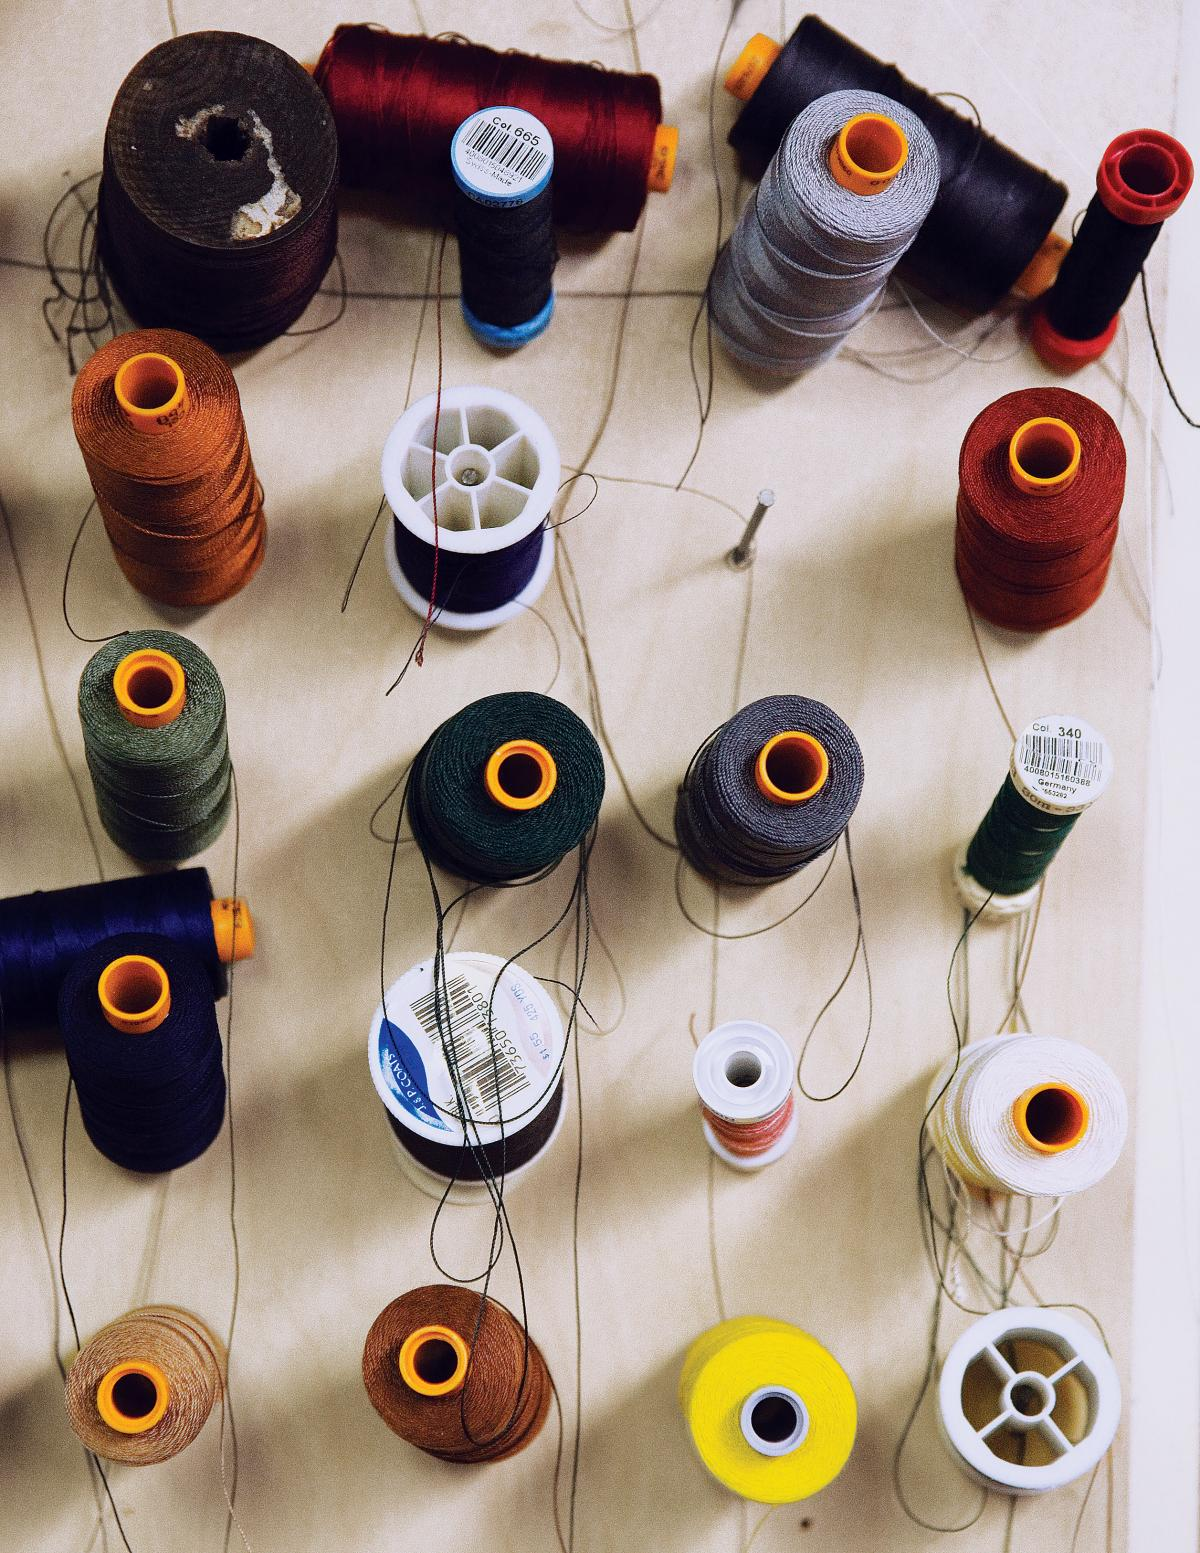 Multiple spools of multi-colored thread are arranged on a white wood table